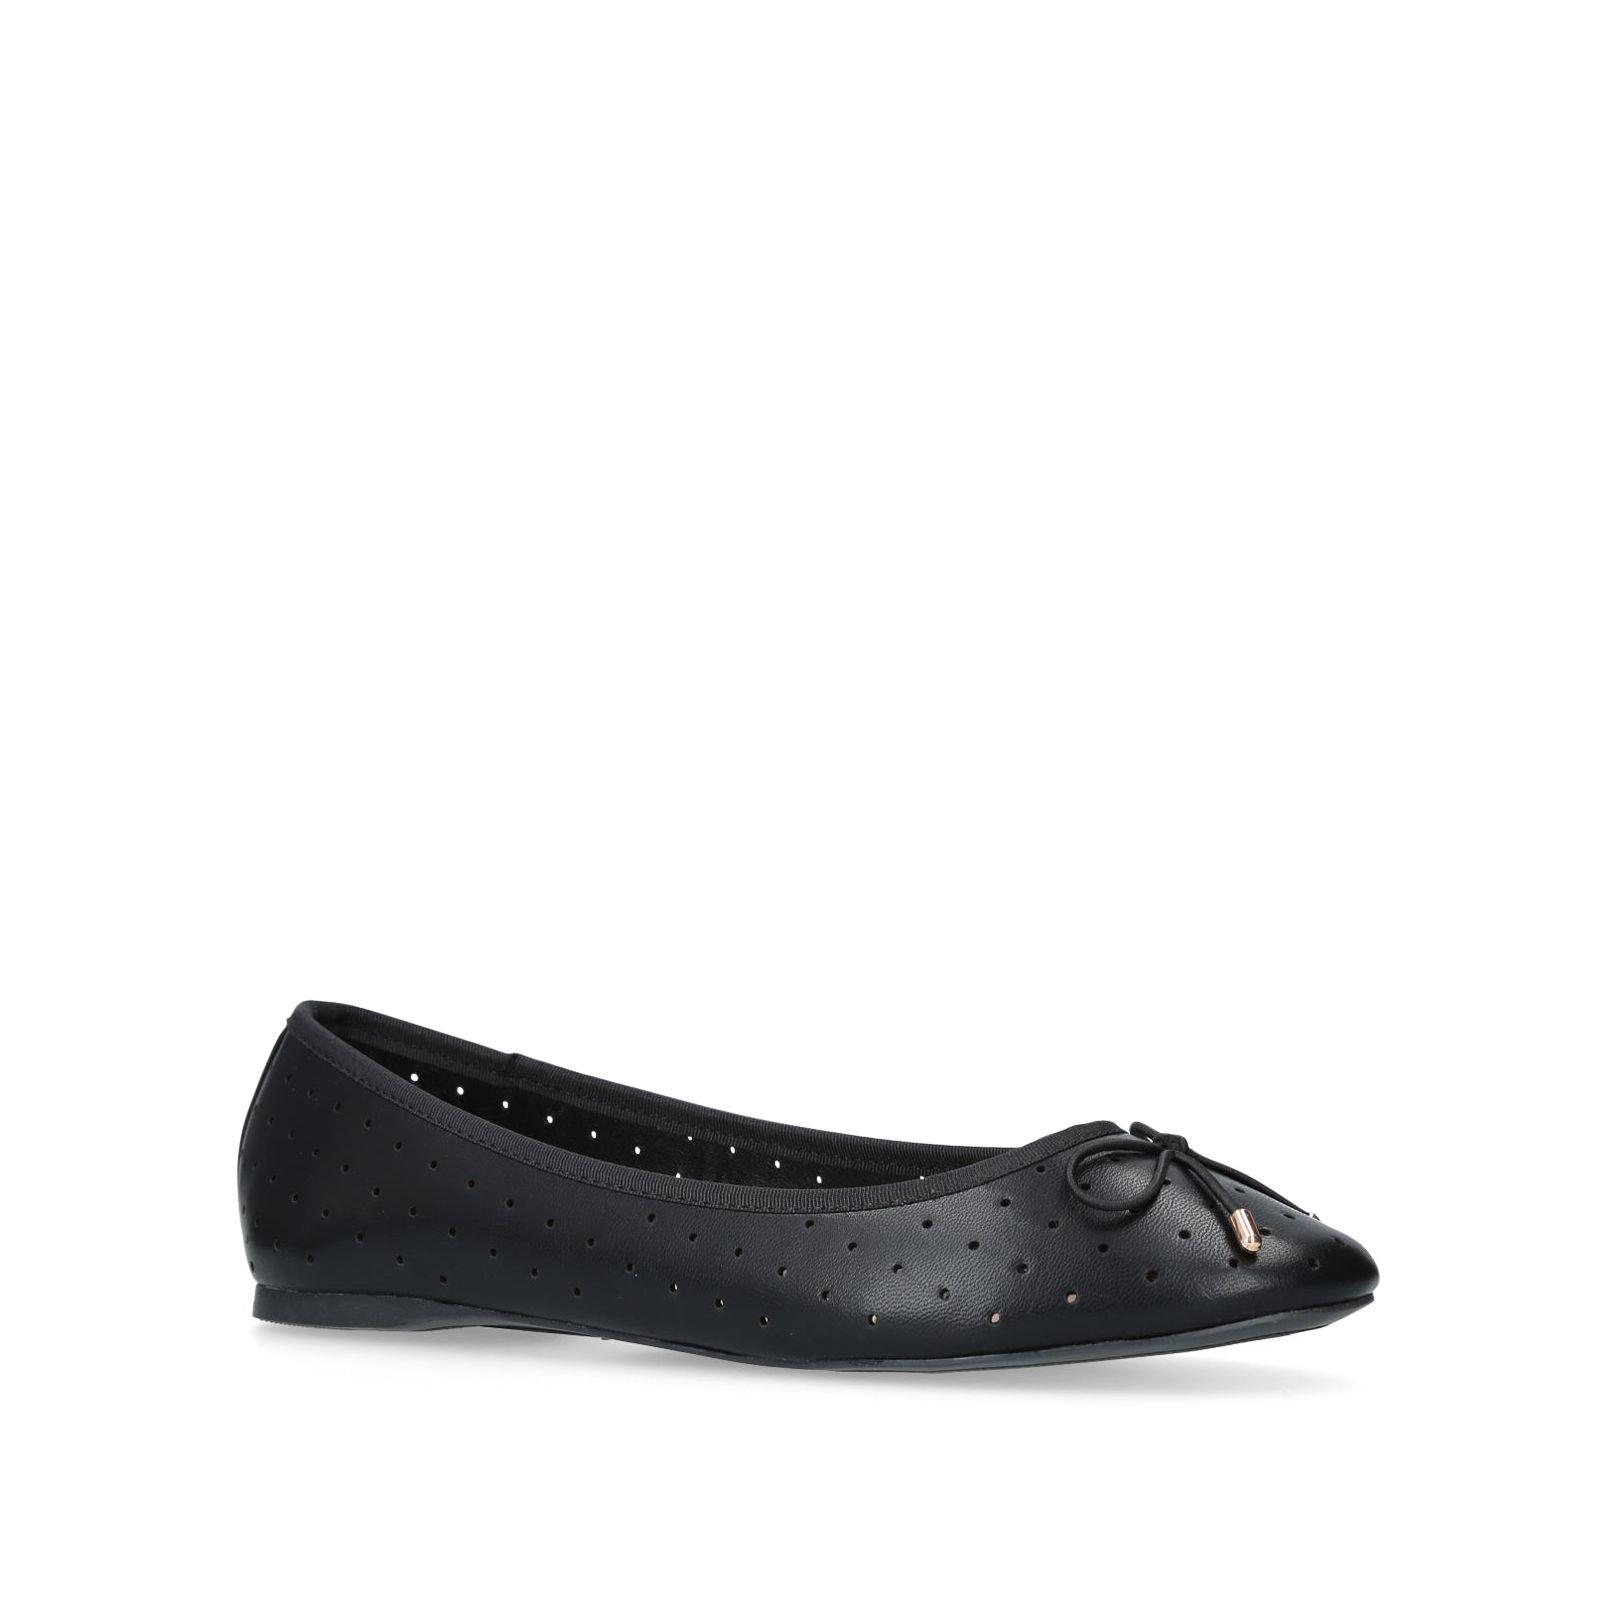 'Melody Perf' pumps amazon online zFTYZct8dy